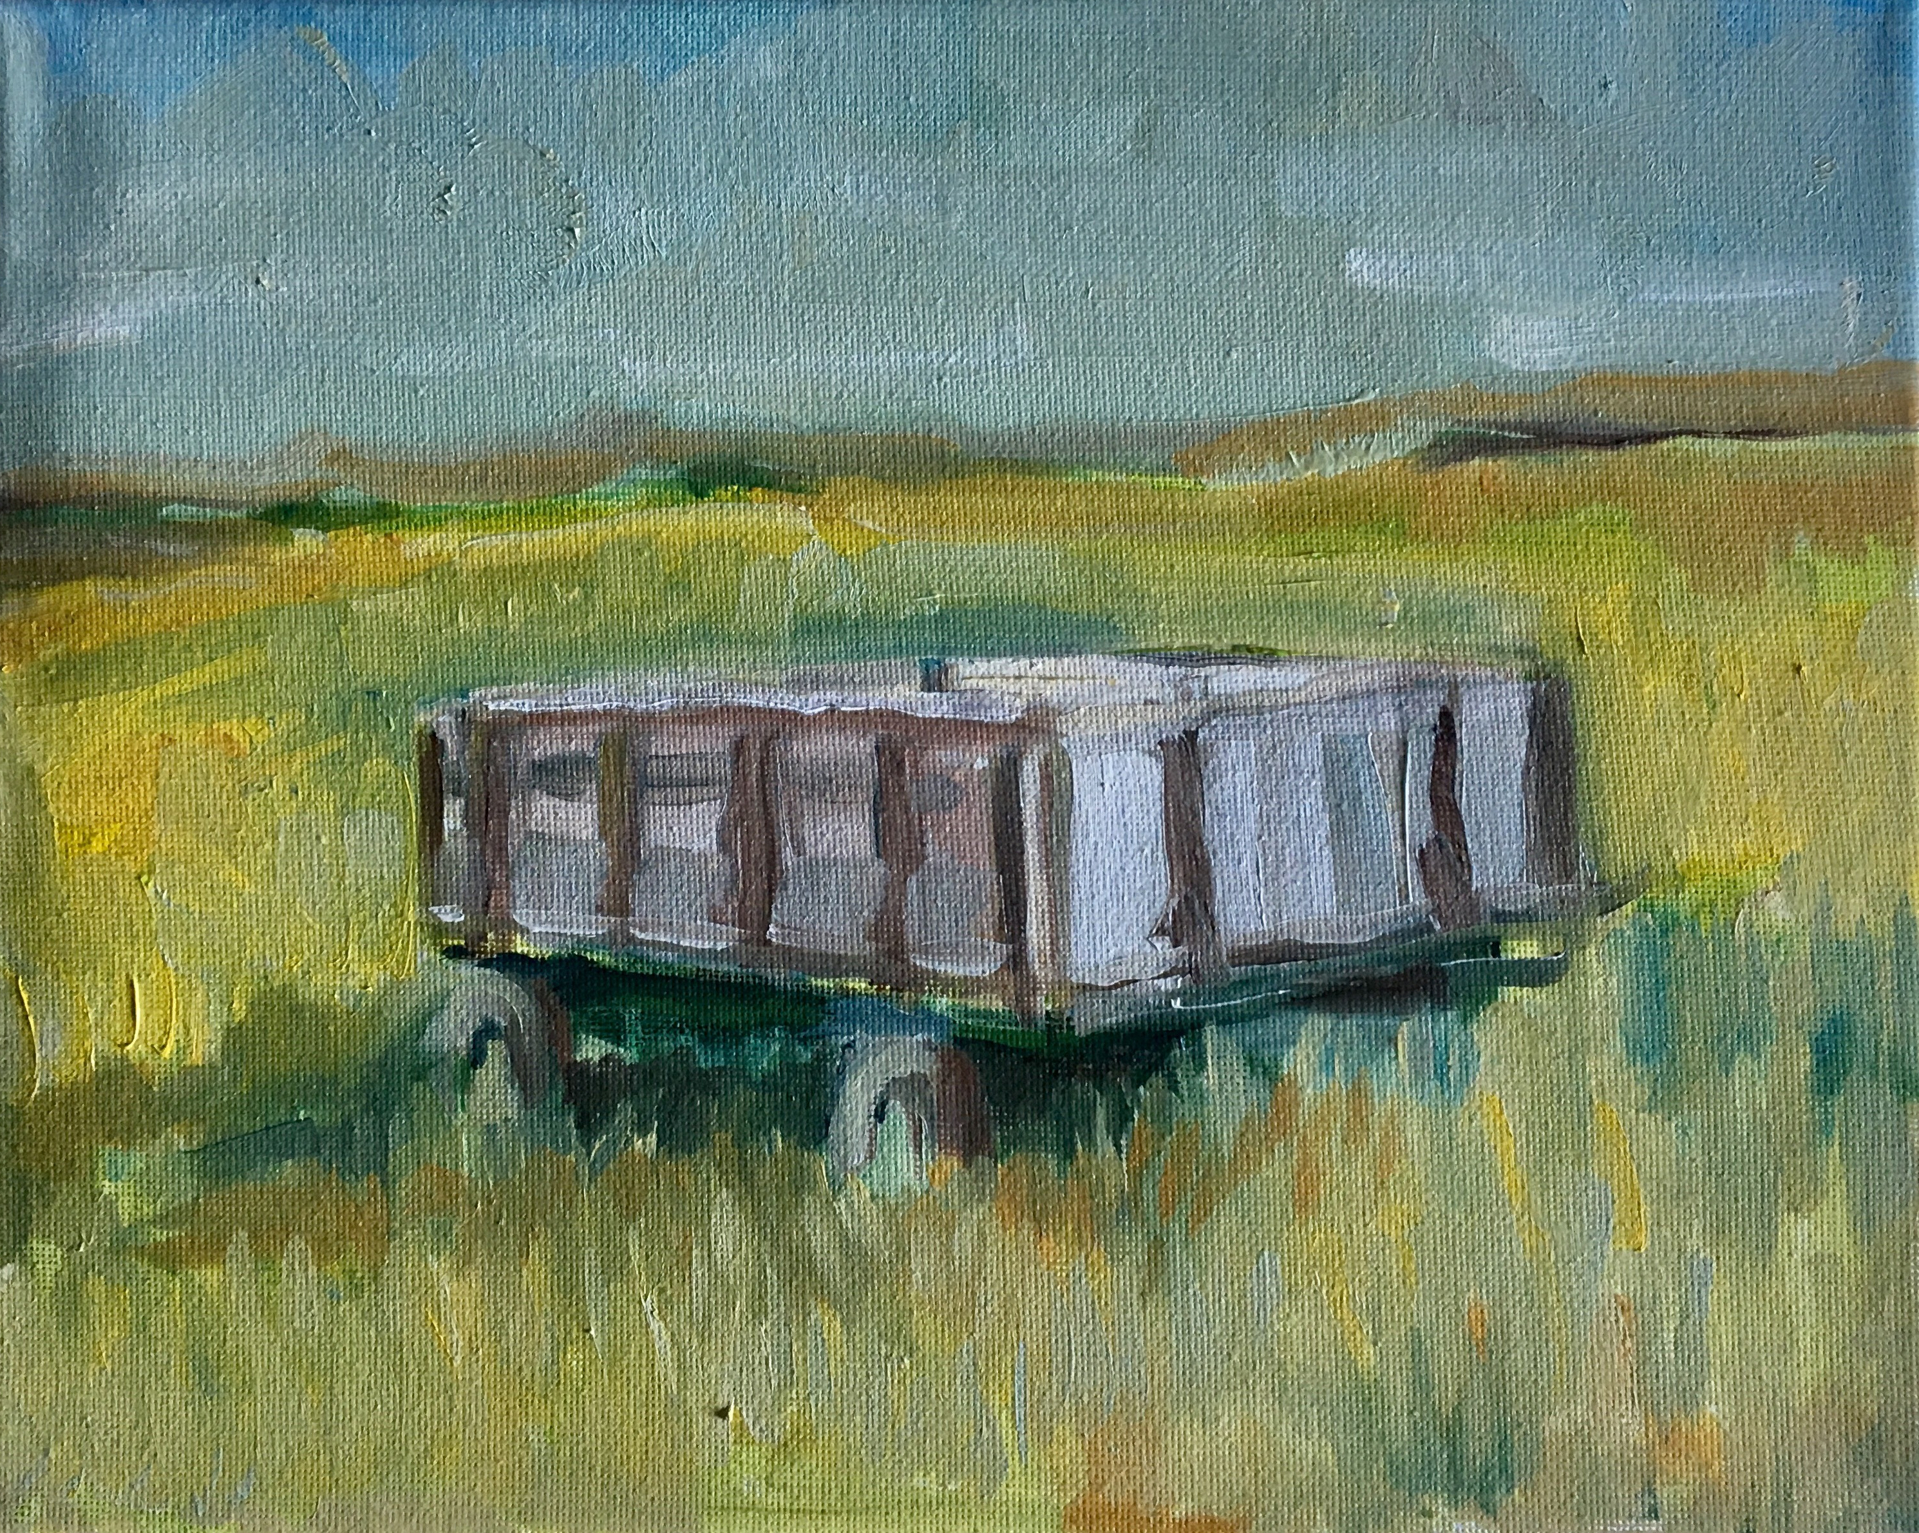 Old Grey Feed Wagon on the Bottom by Cassia Kite